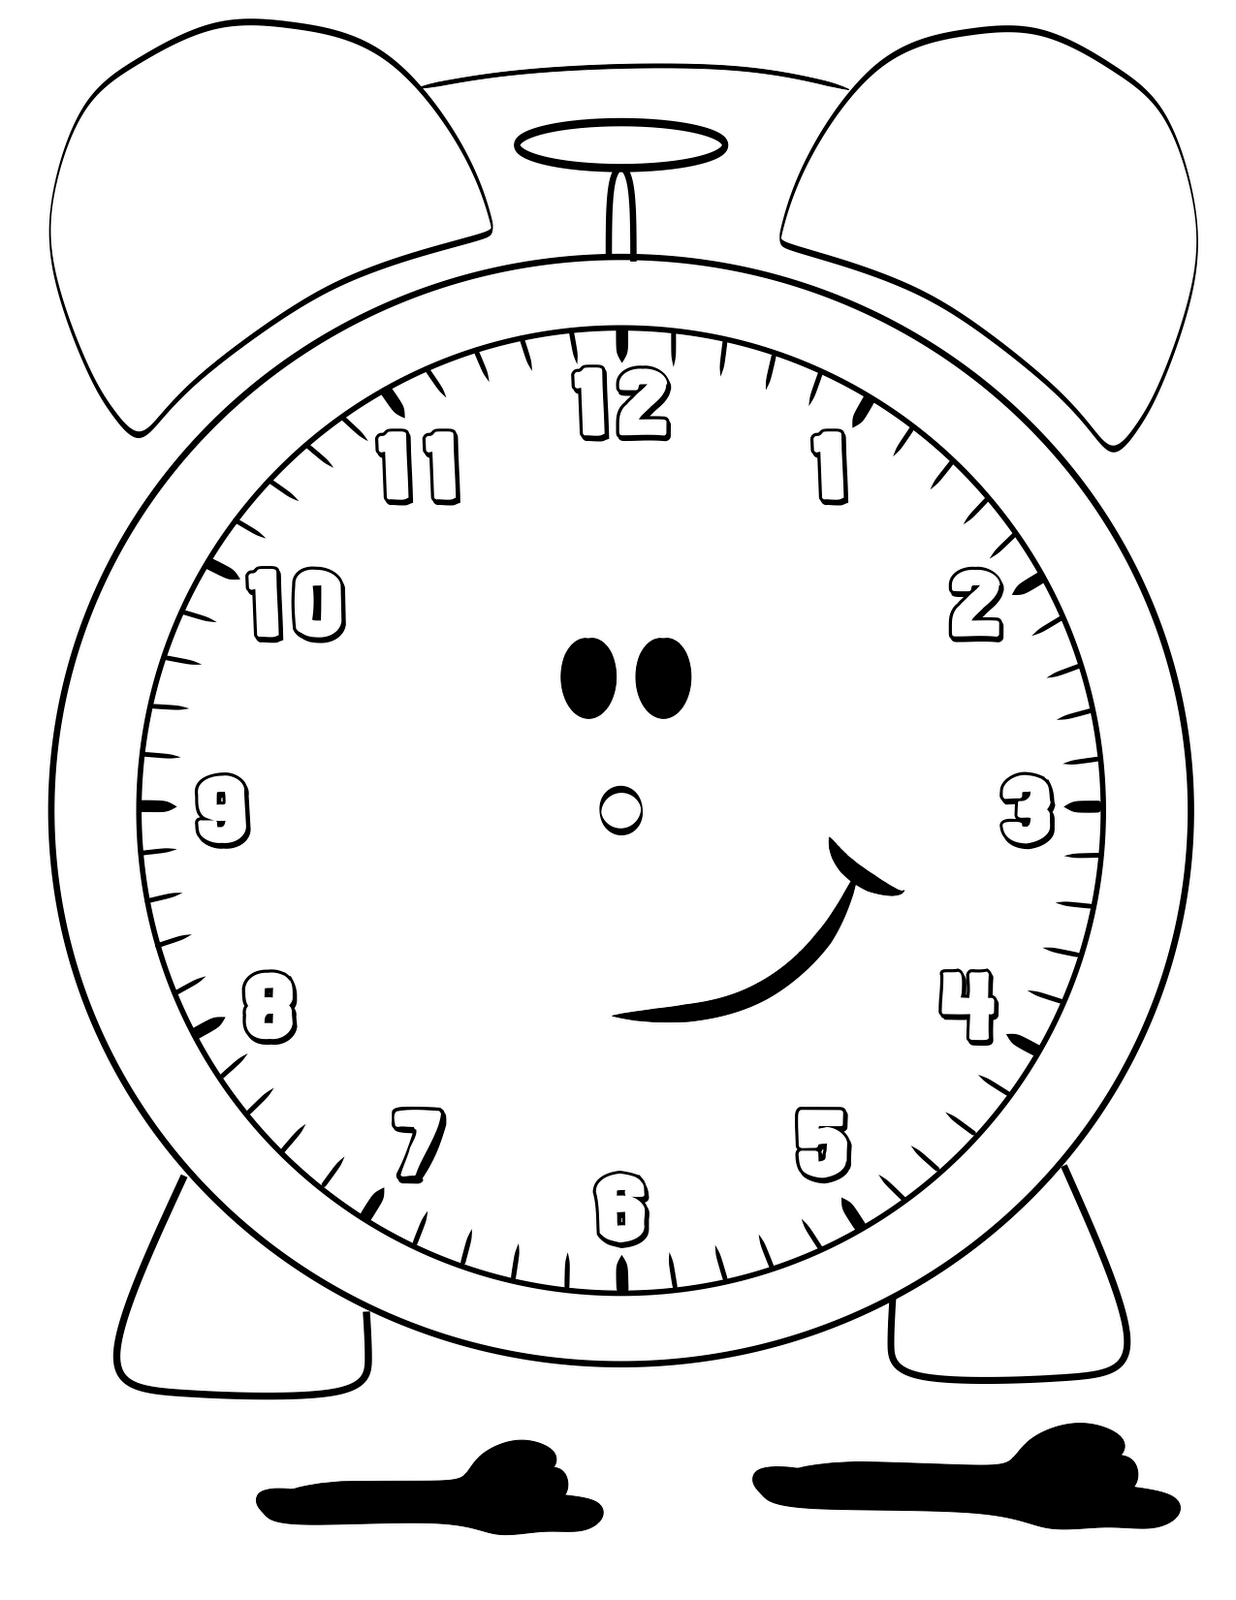 Sassy image intended for printable clock